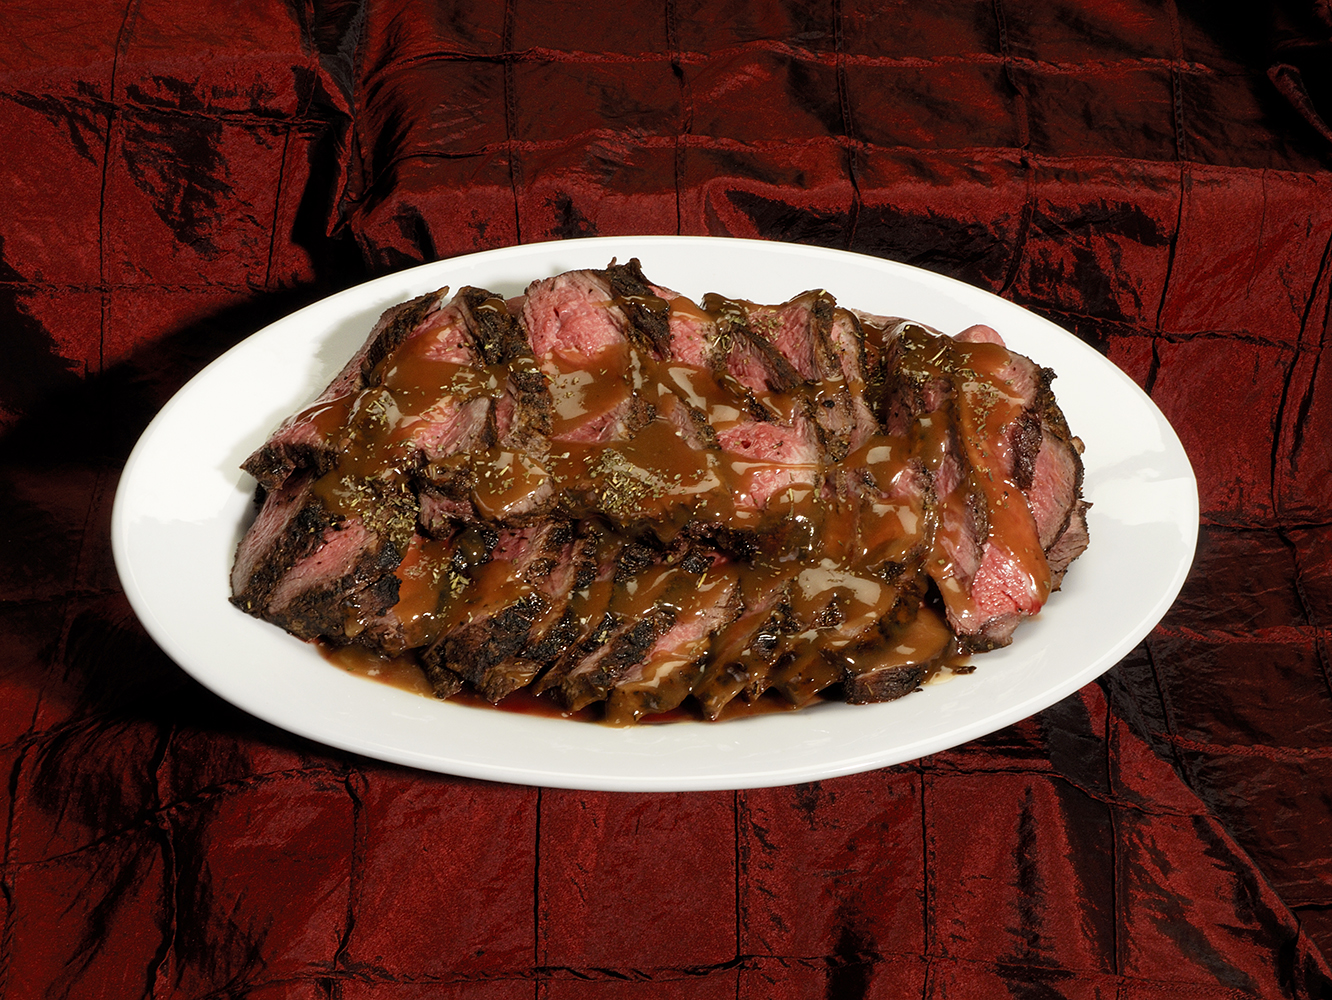 Sliced beef with gravy on white plate